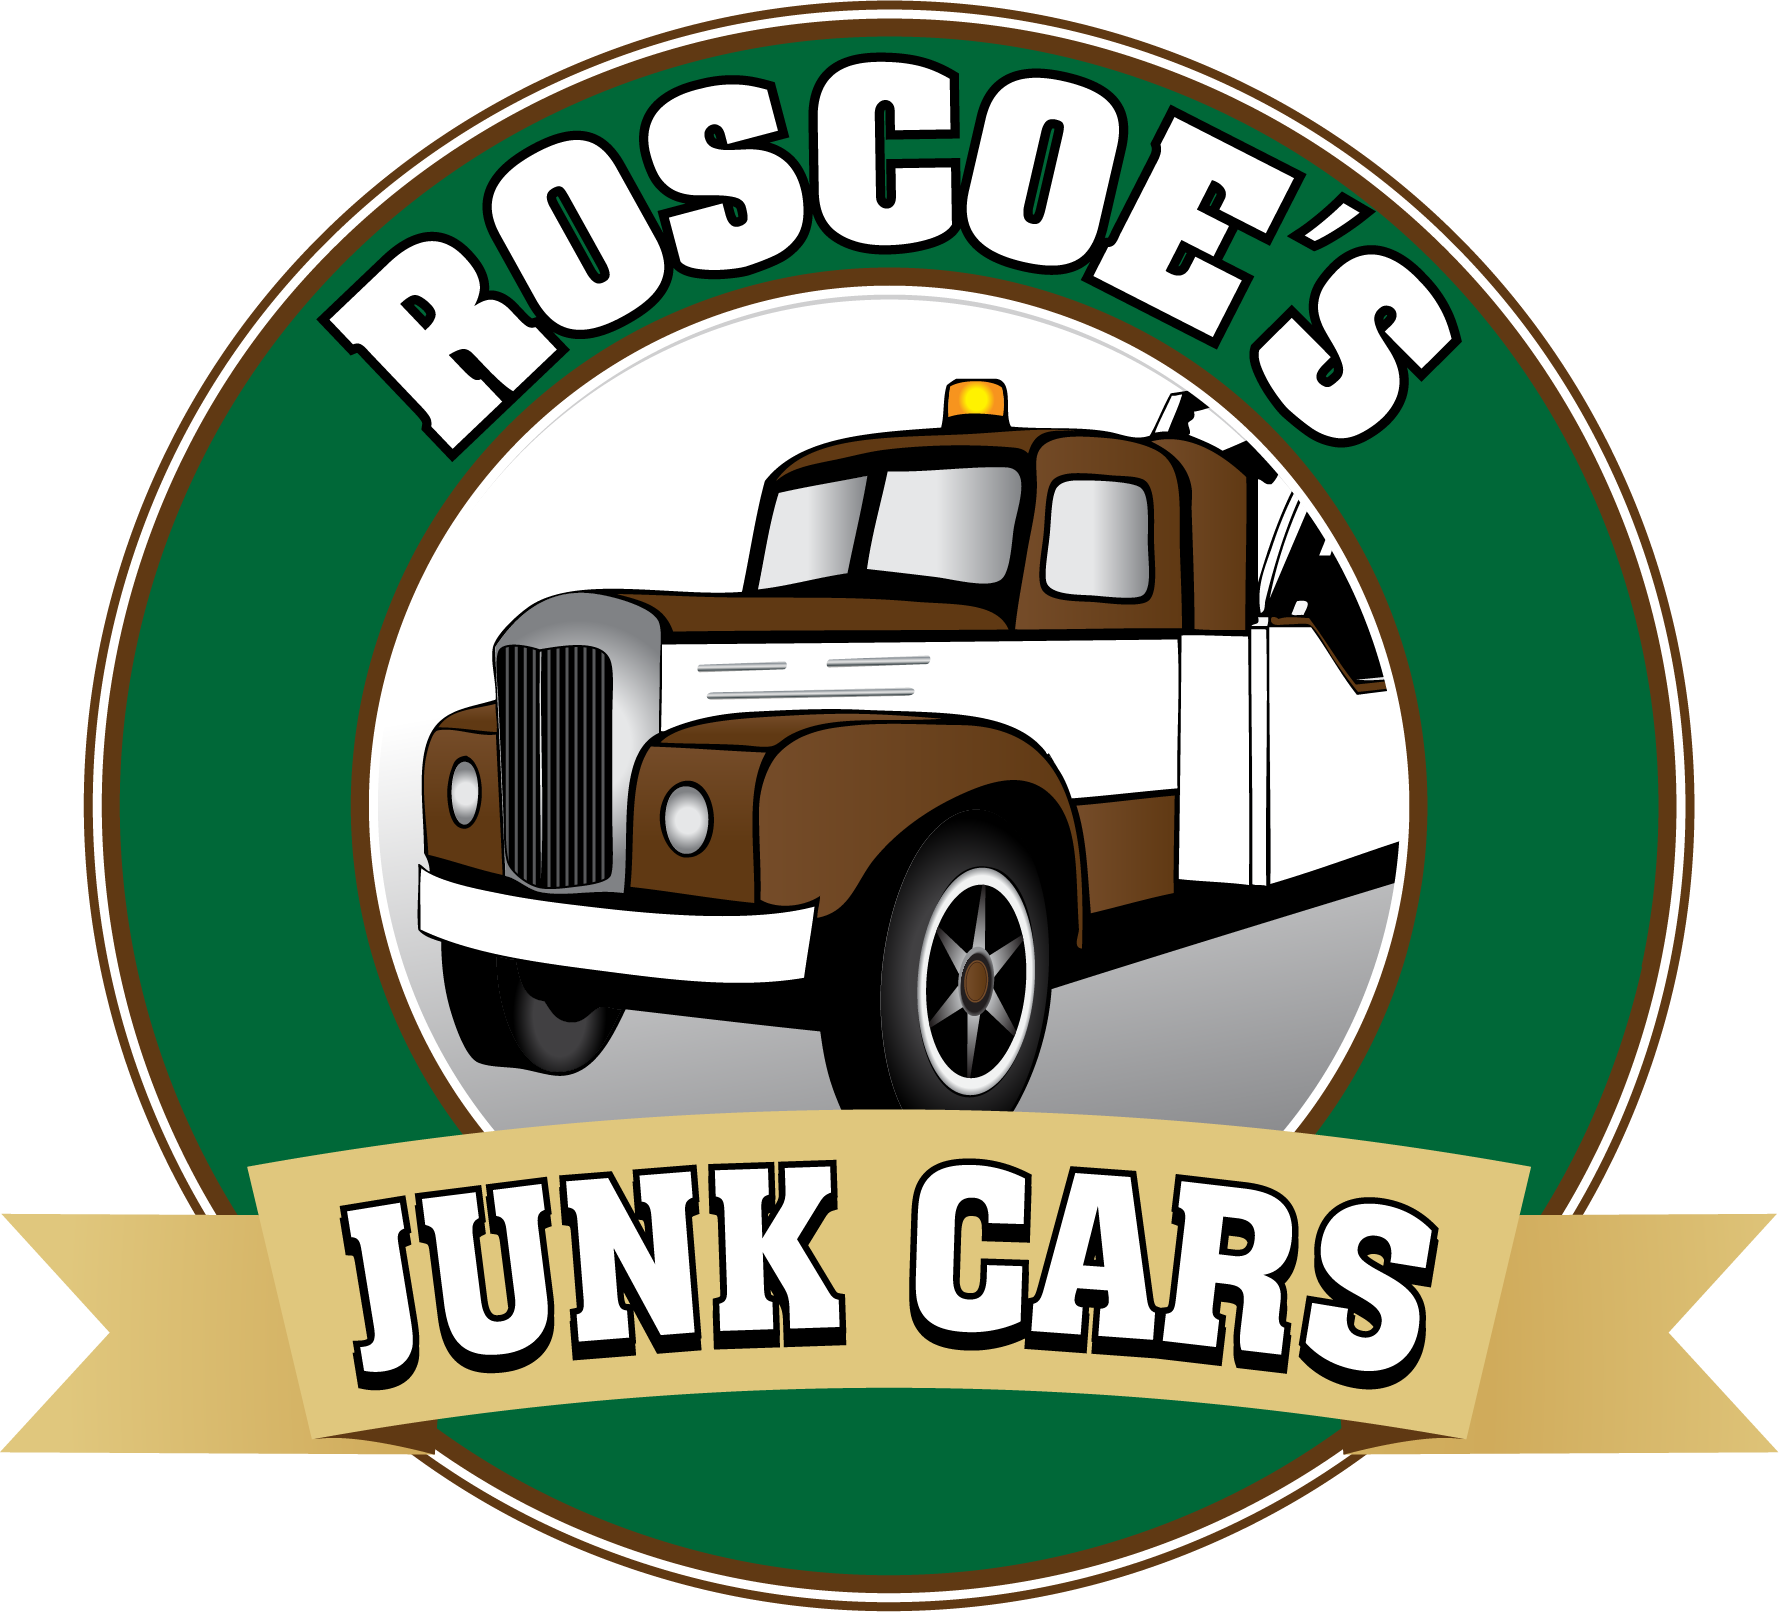 Car pick up clipart picture download Roscoe's - Cash for Junk Cars & Immediate Junk Car Removal in ... picture download